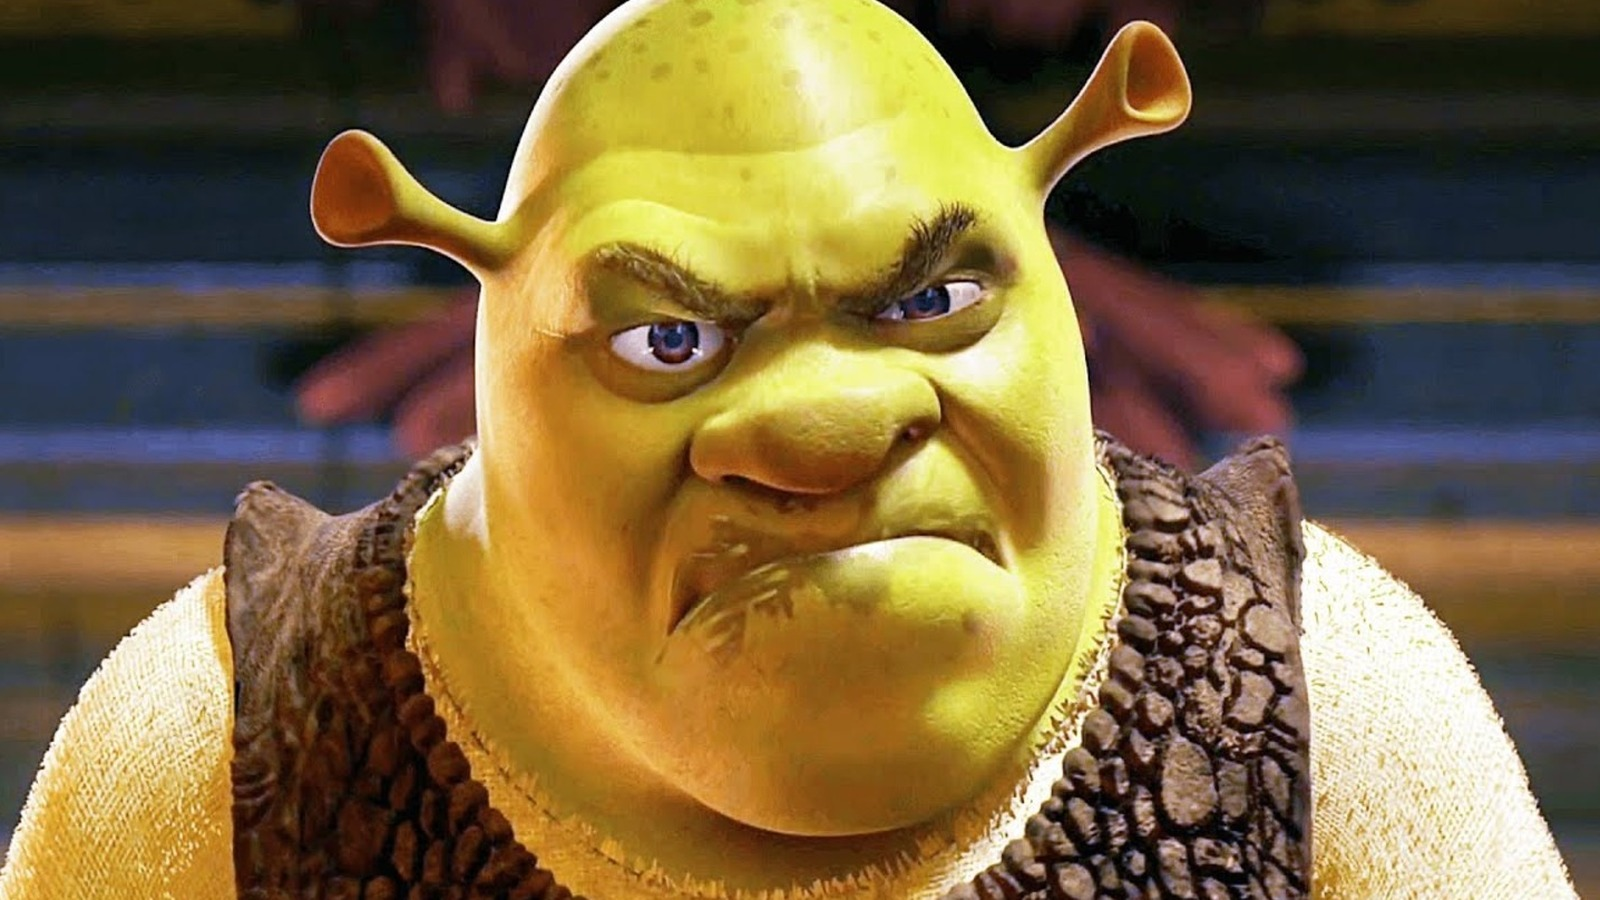 Shrek 5 Release Date, Characters And Plot - What We Know So Far